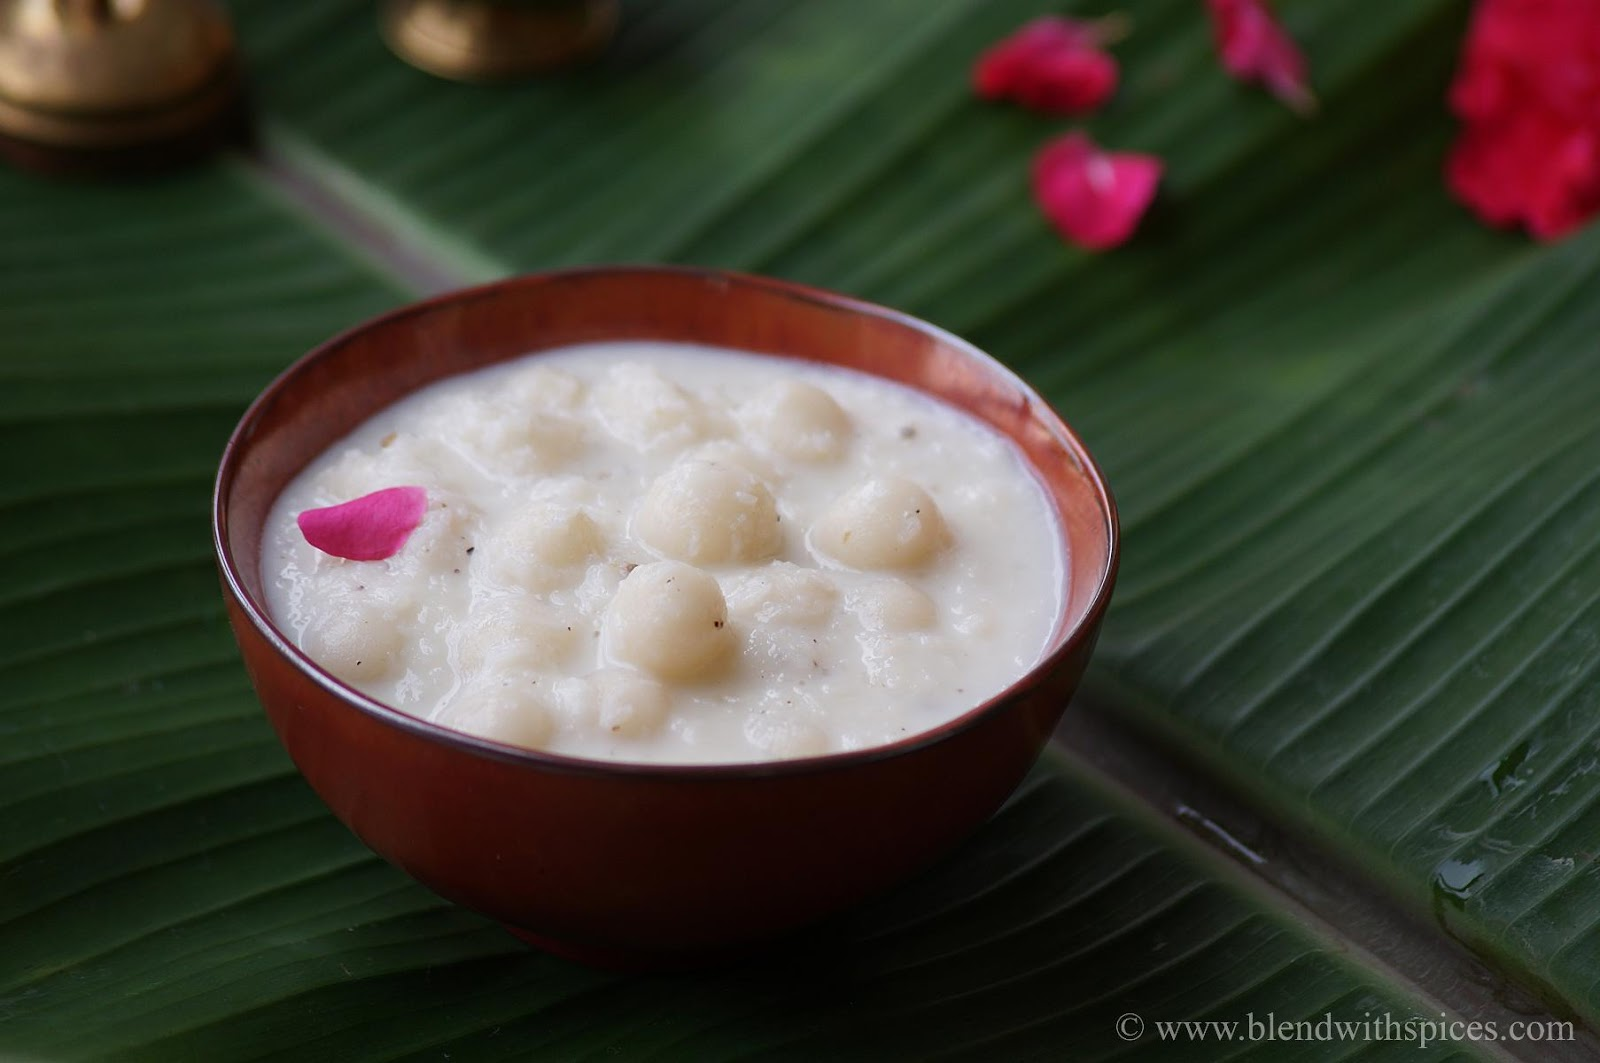 how to make undralla payasam with rice flour, step by step recipe with video, vinayaka chavithi prasadam